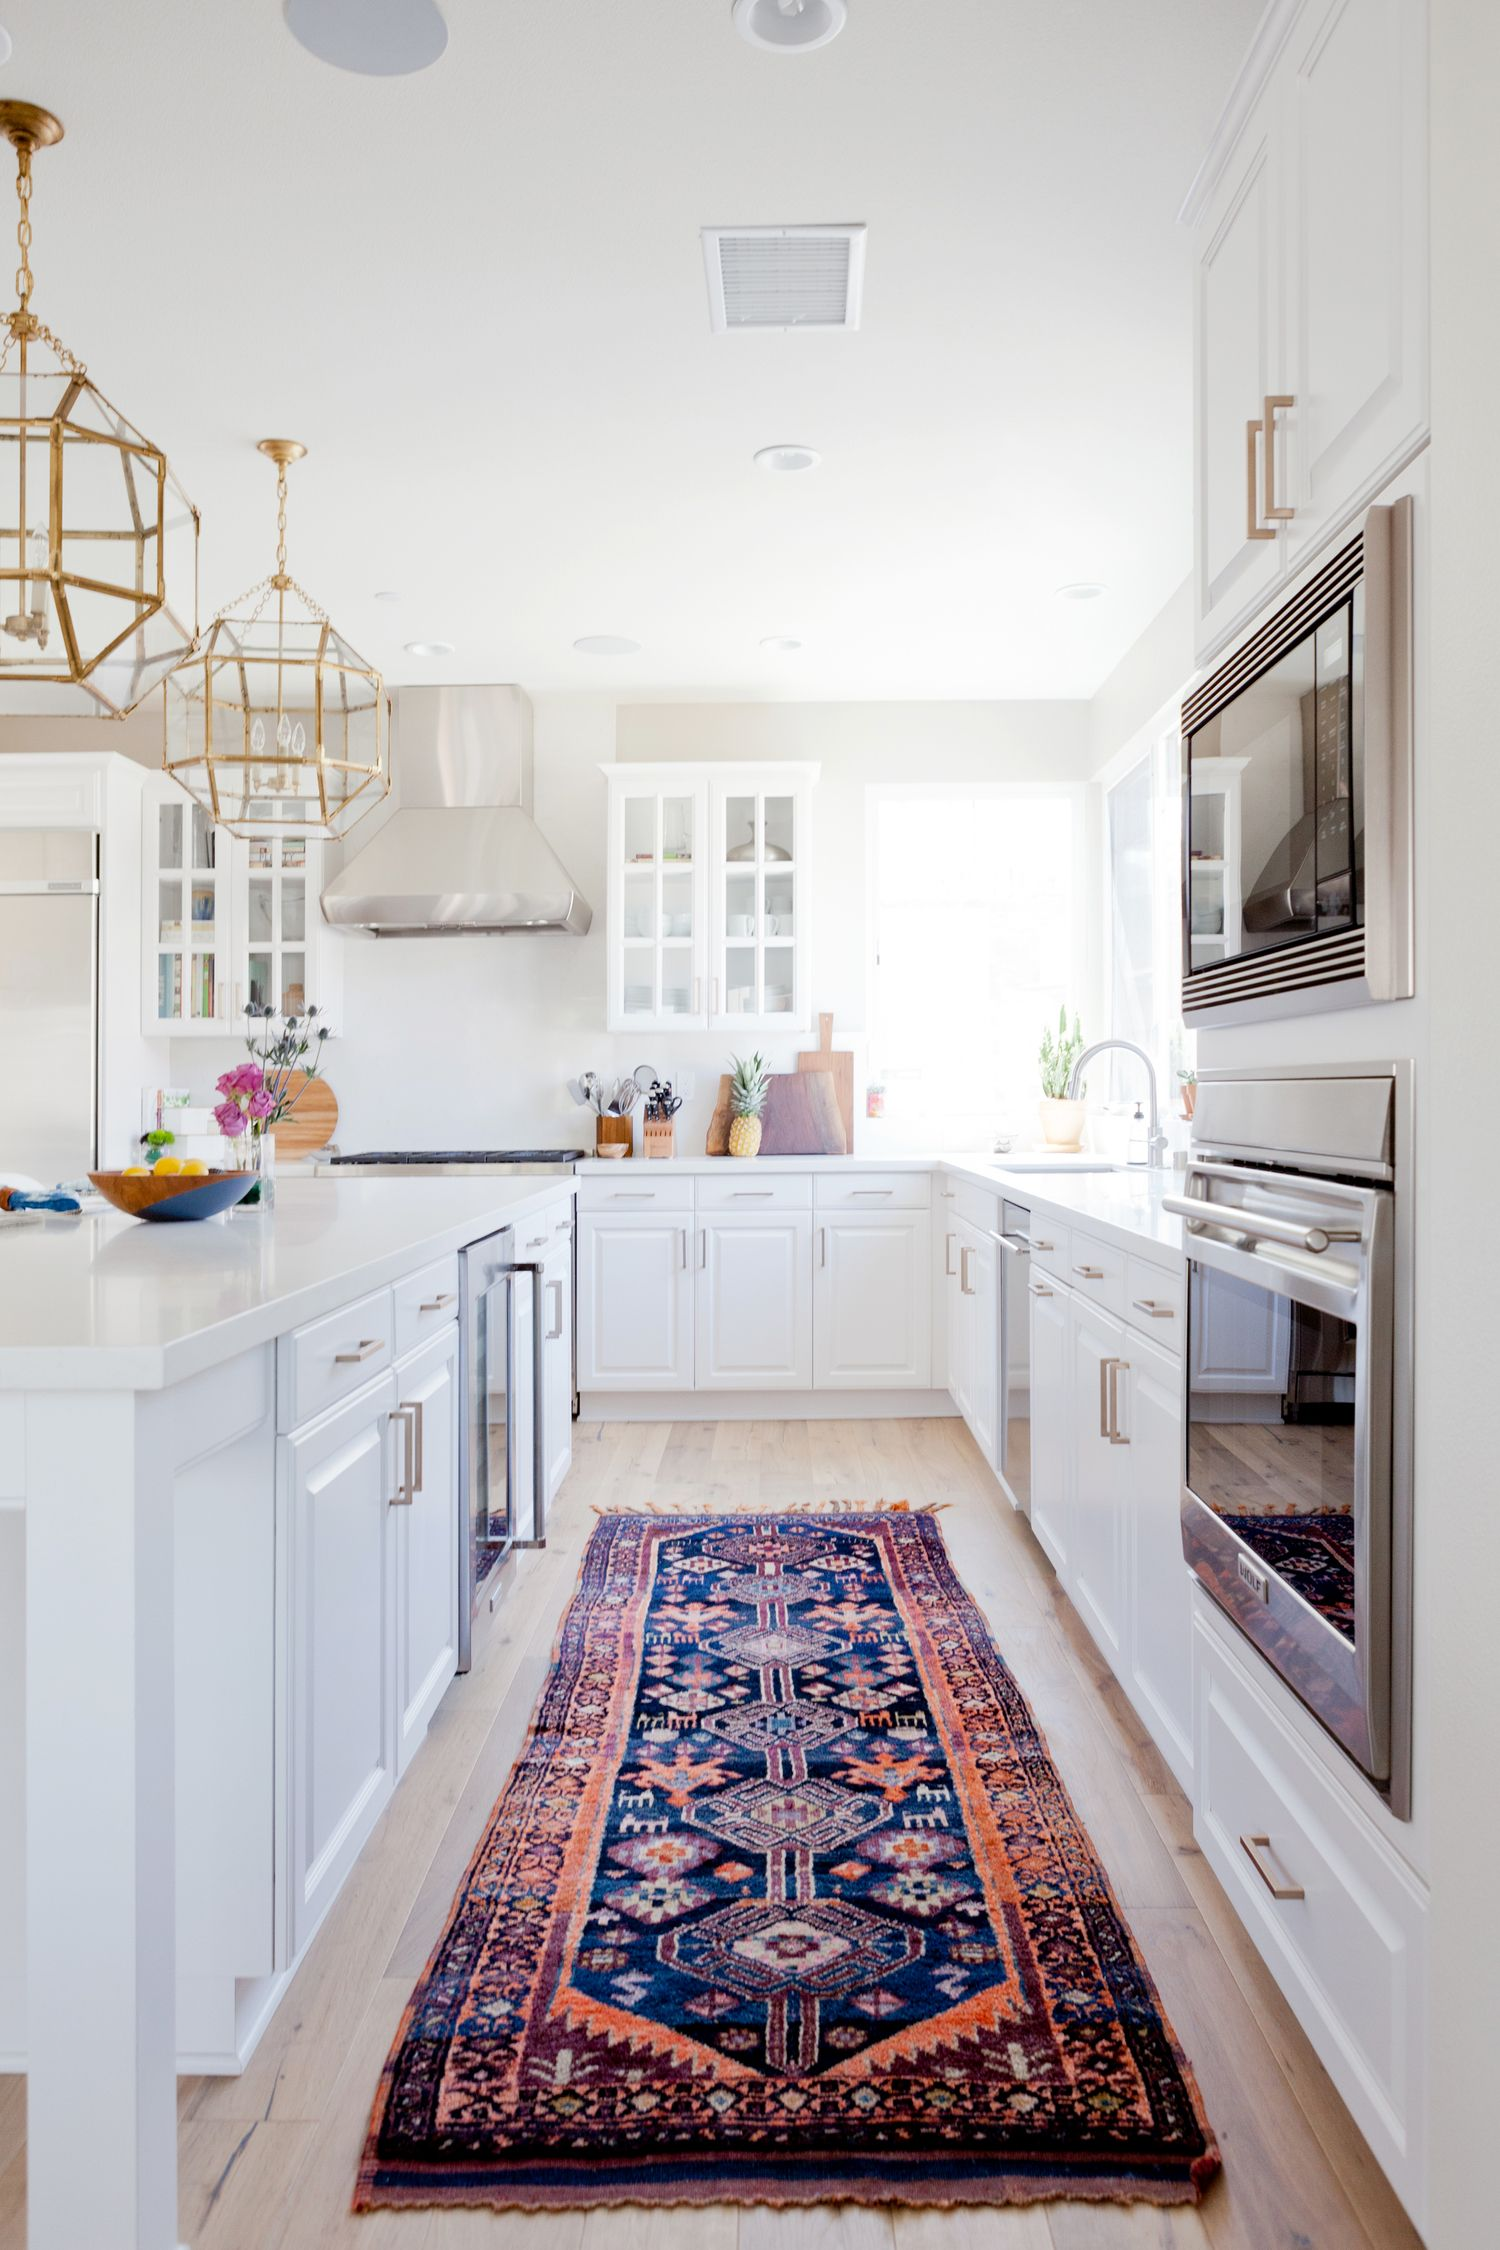 Design Crush: Rugs in the Kitchen | Golden girls, Crushes and Kitchens